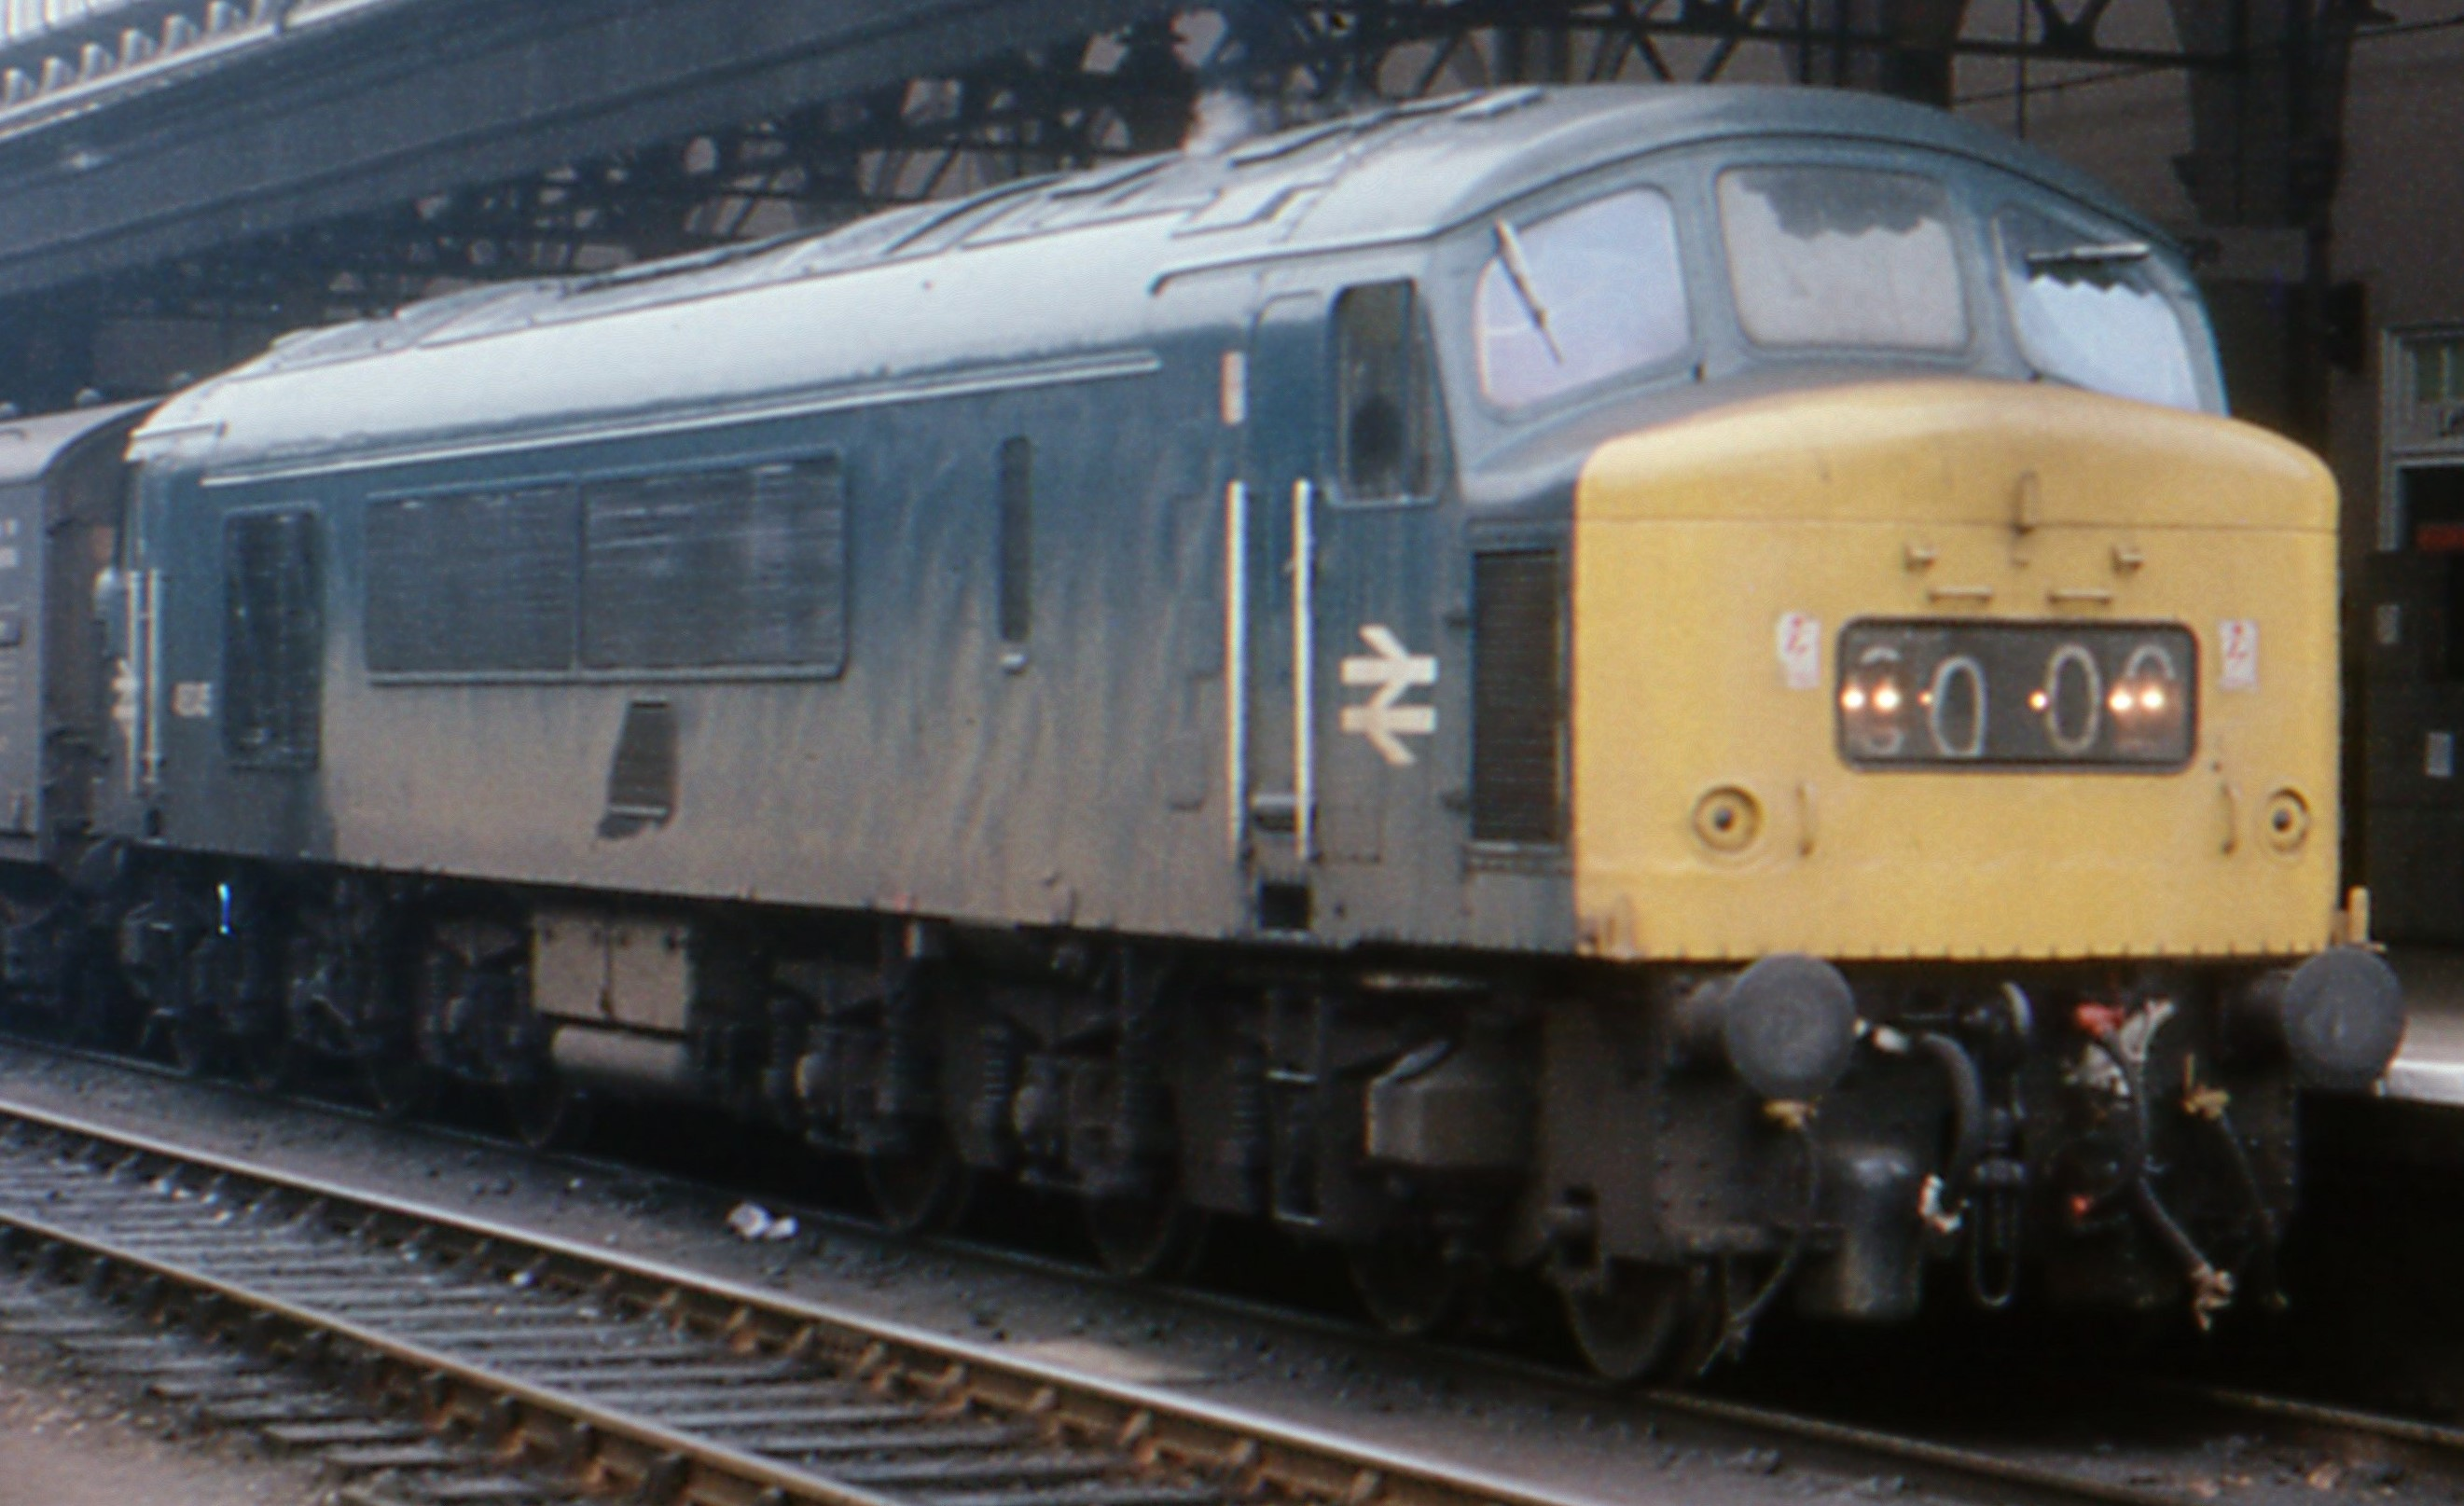 46045 at Exeter St Davids in January 1976. ©Barry Lewis